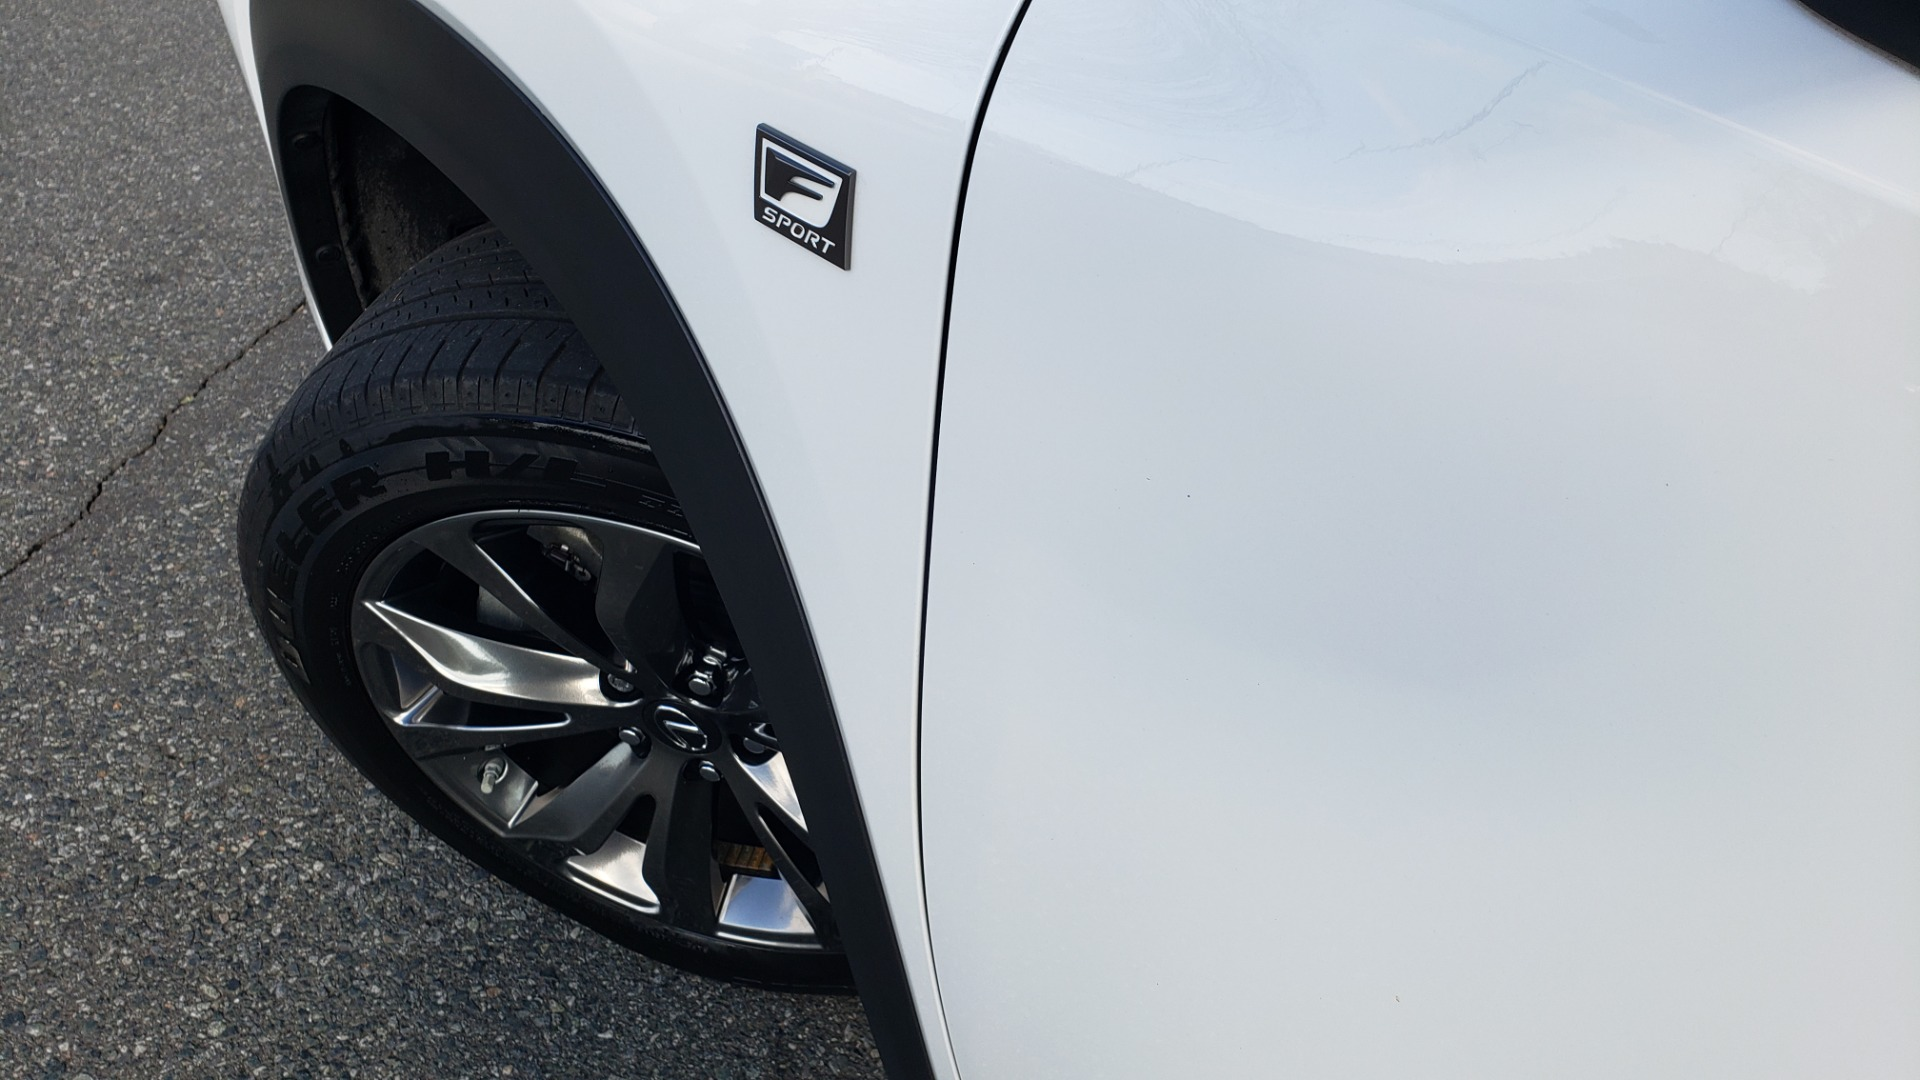 Used 2019 Lexus NX 300 F-SPORT / 2.0L TURBO / LEATHER / 18IN WHEELS / REARVIEW for sale Sold at Formula Imports in Charlotte NC 28227 90